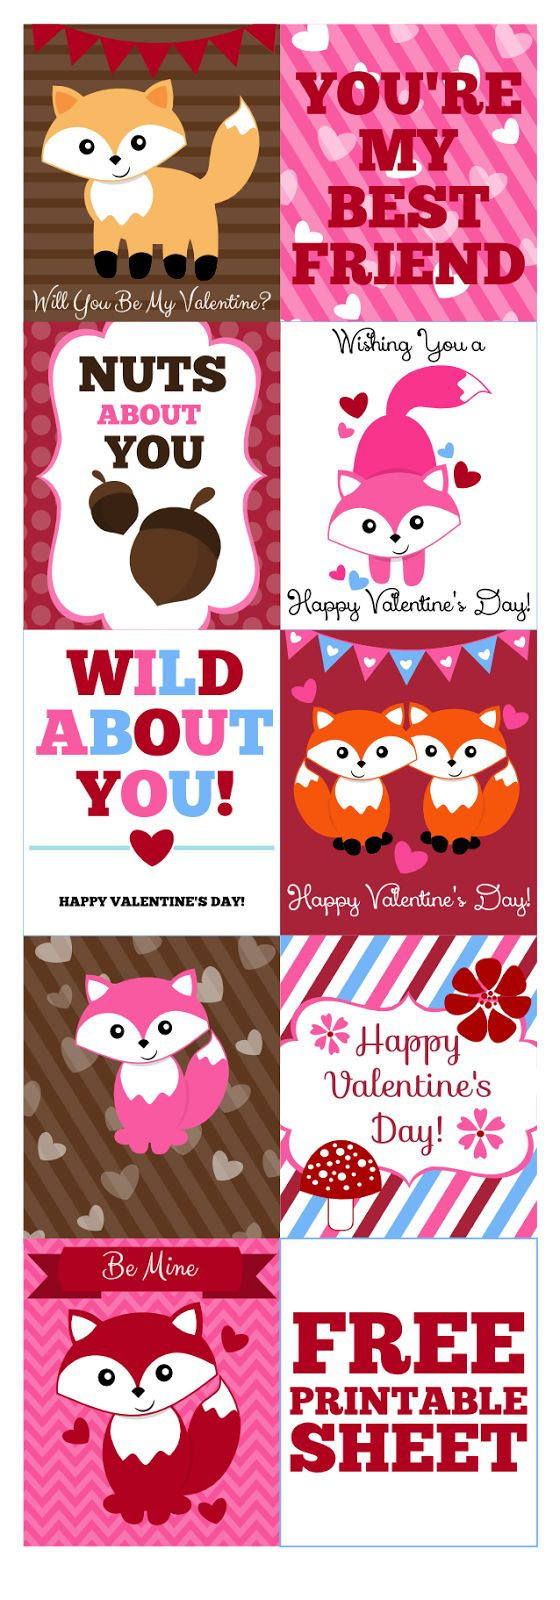 Free Valentine's Day Fox Printables from Jessica Sawyer Design